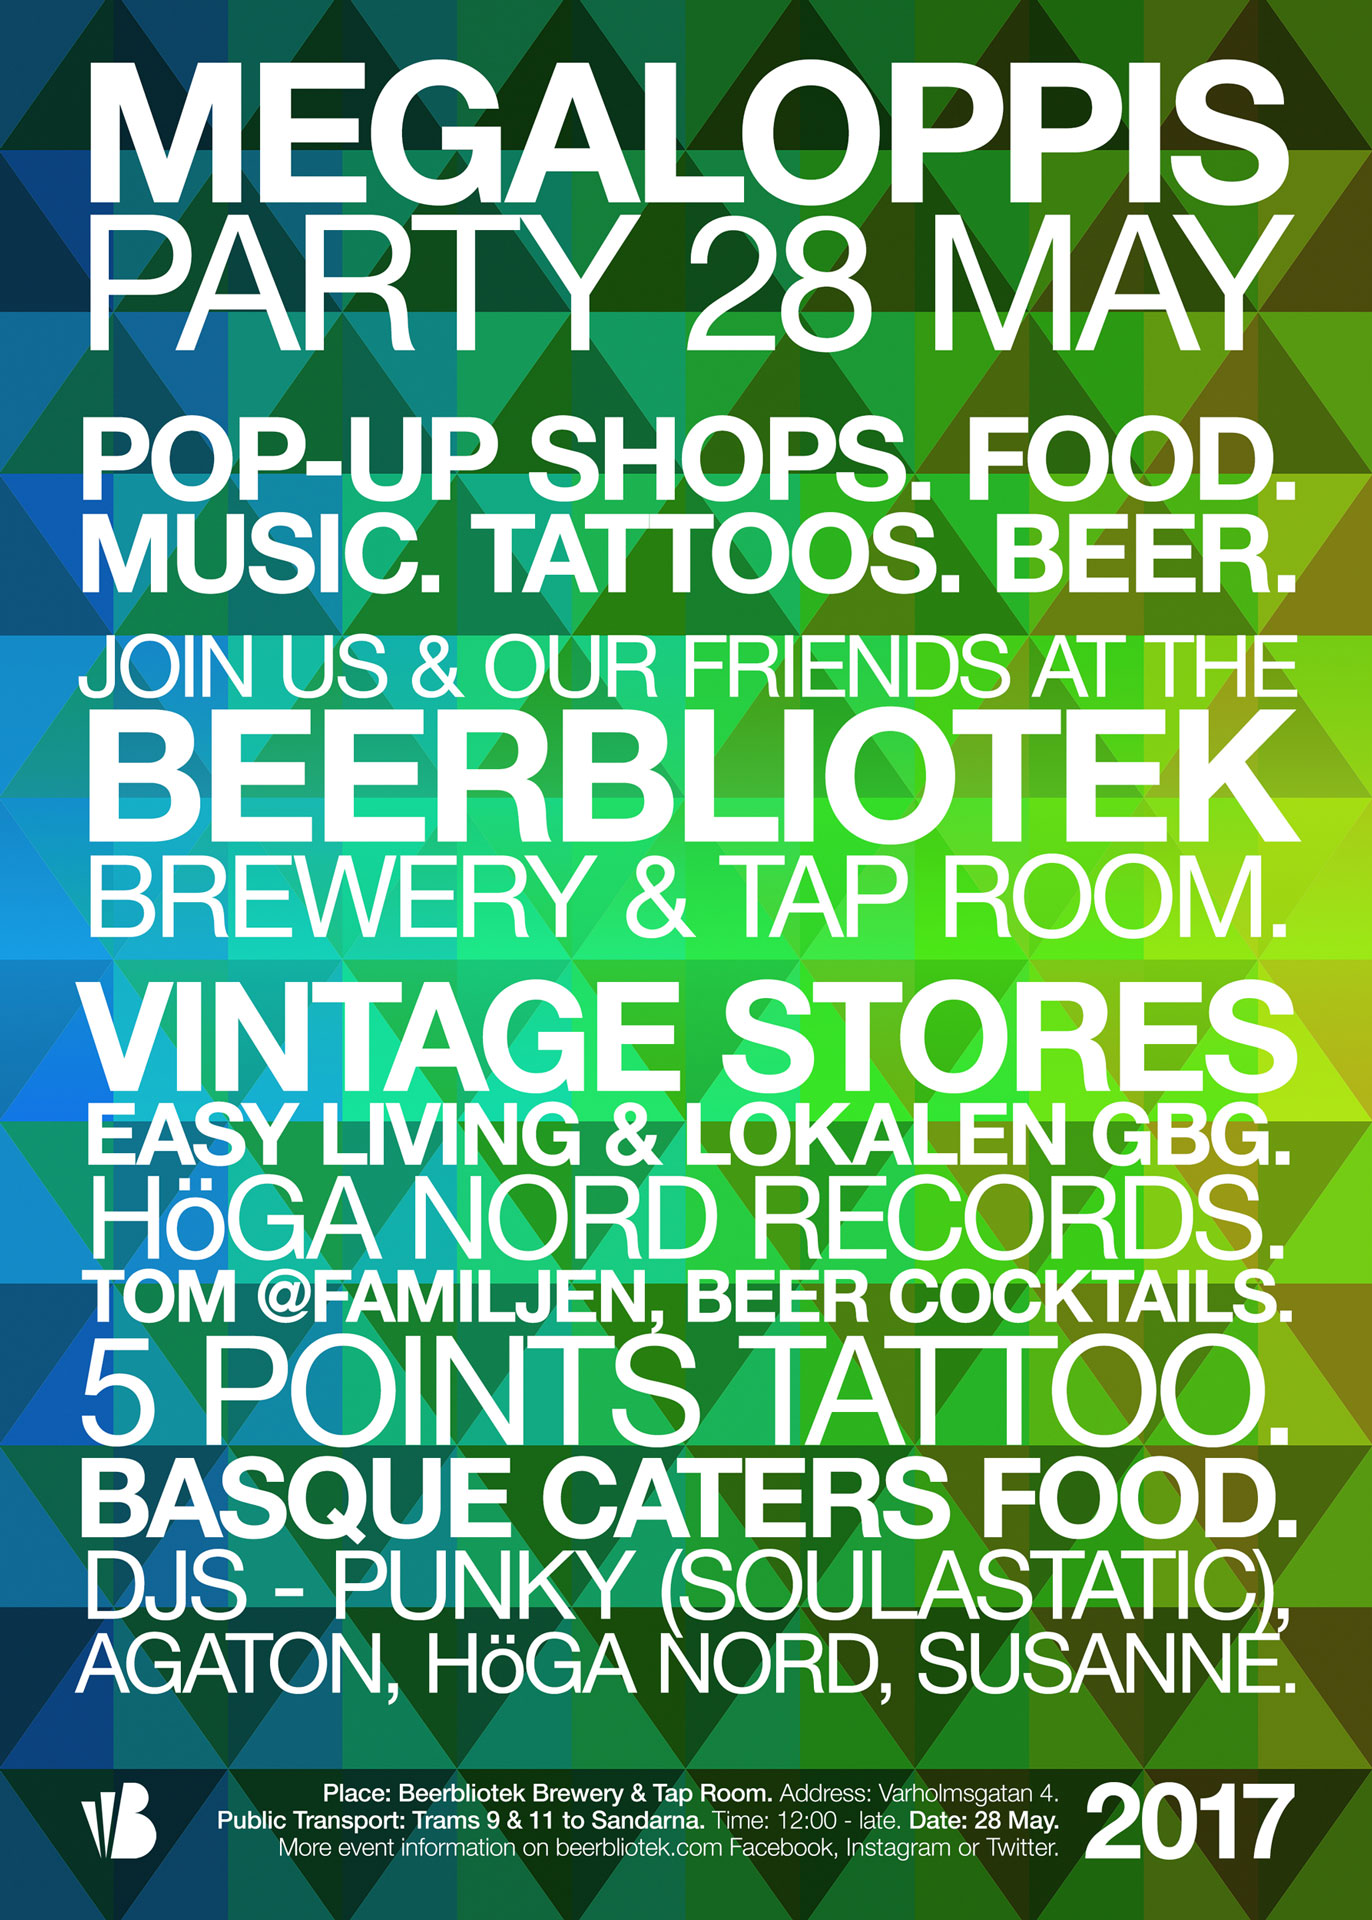 Beerbliotek Megaloppis Party 2017 poster, containing all the names of the companies that we take part in the day.